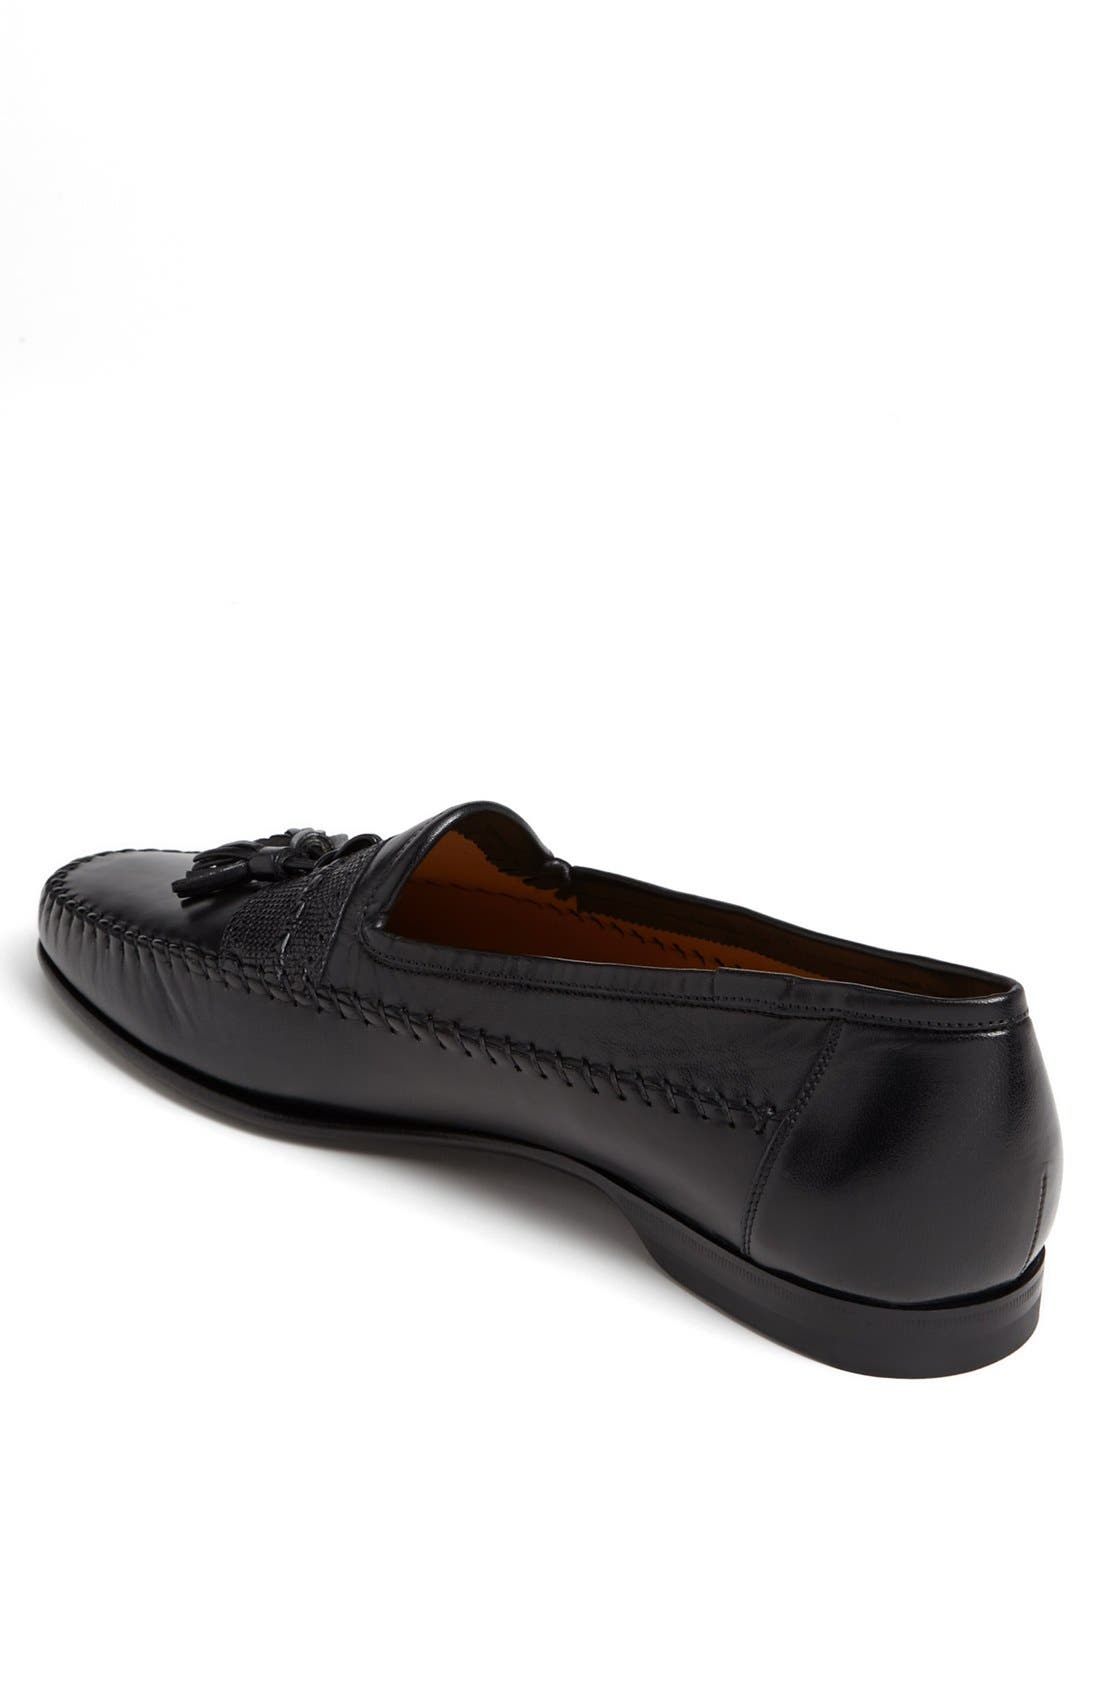 'Hammon' Loafer,                             Alternate thumbnail 2, color,                             BLK